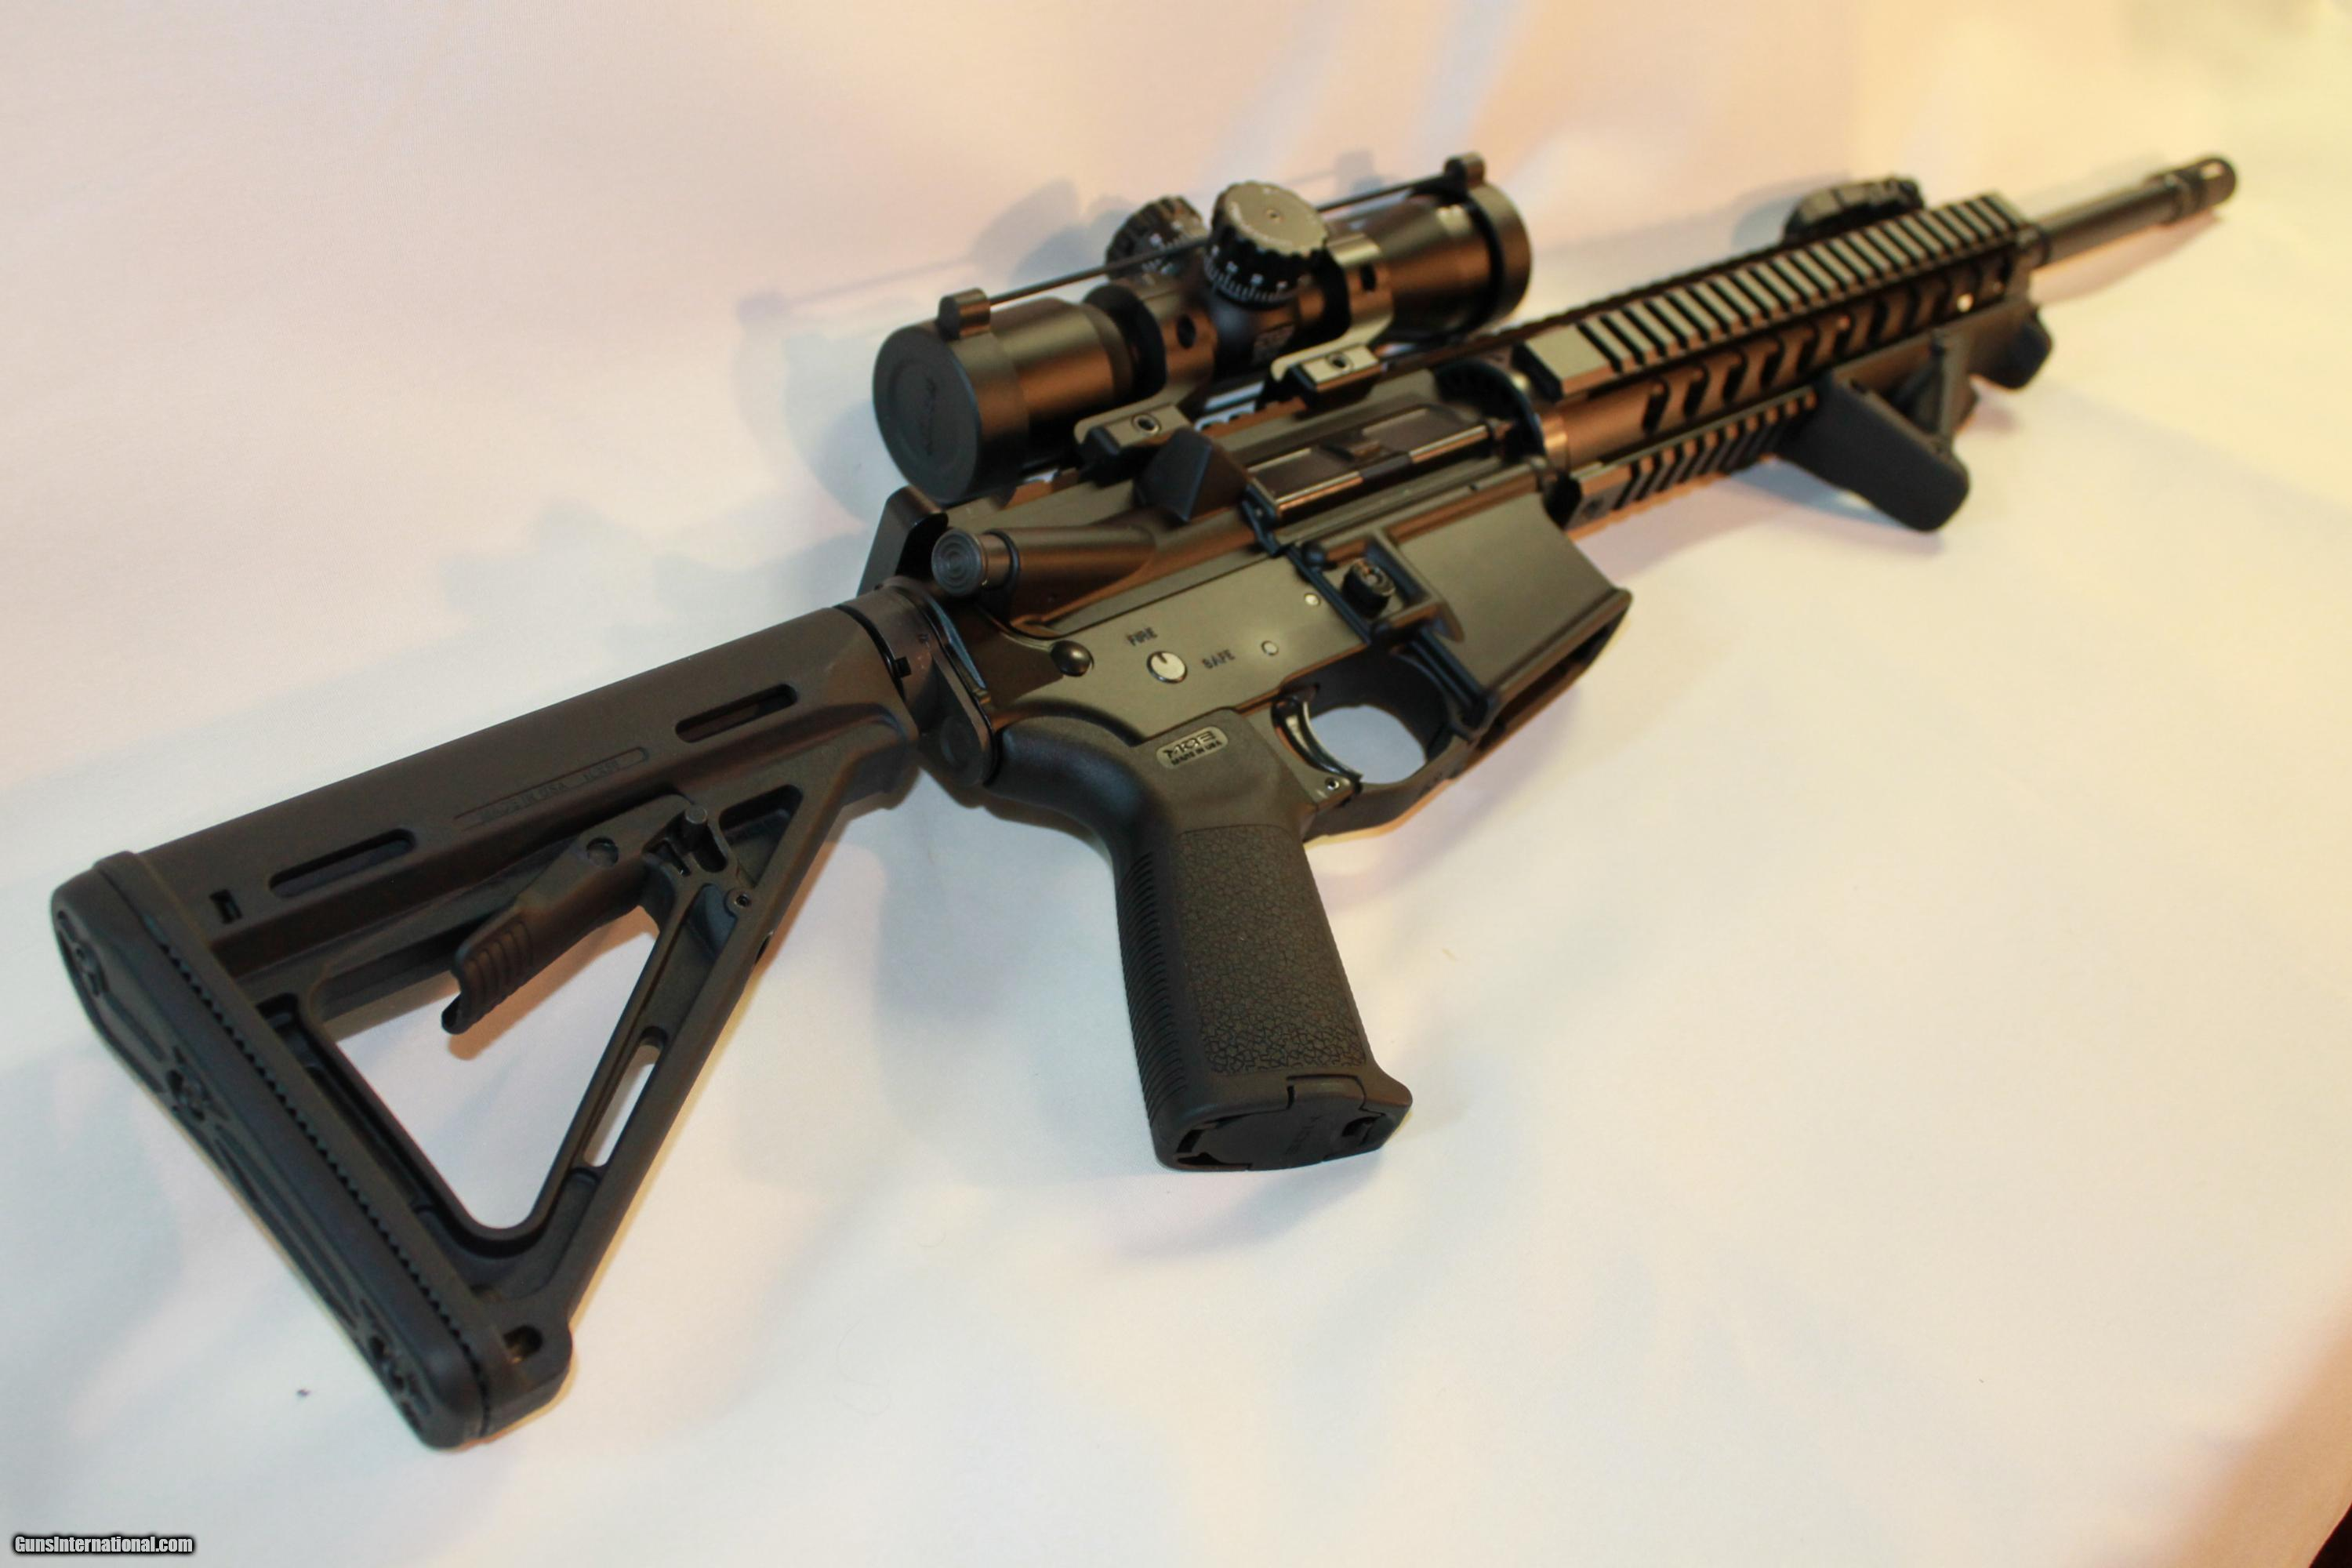 Palmetto State Armory AR-15 Rifle Multi-Caliber for sale